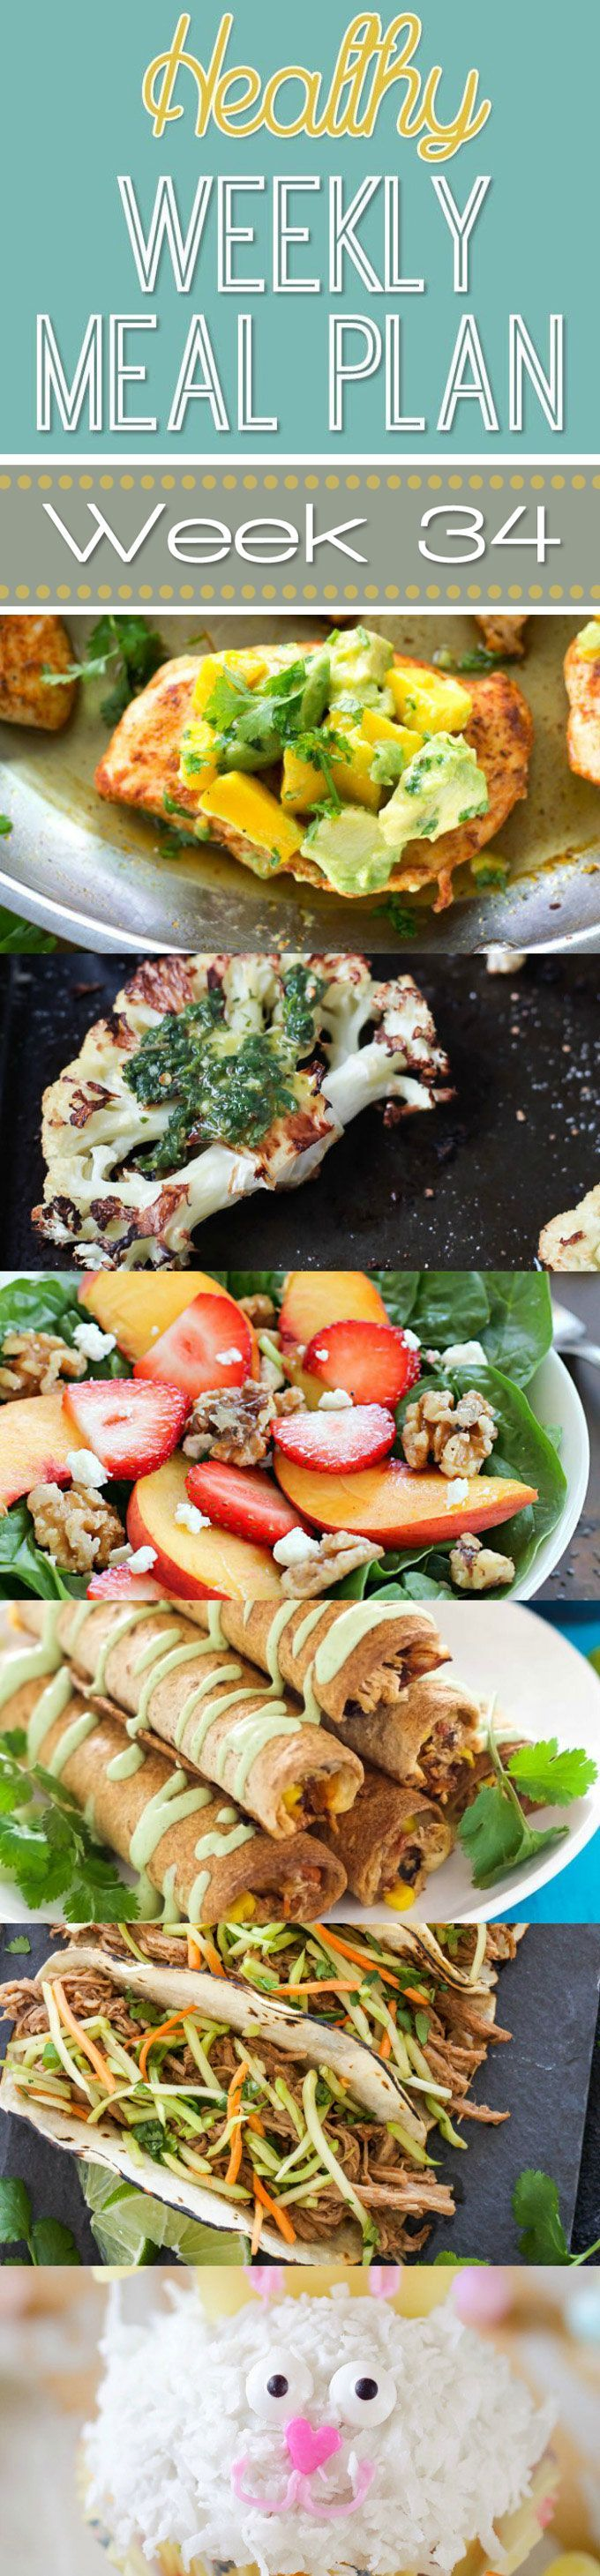 A delicious mix of healthy entrees, snacks and sides make up this Healthy Weekly Meal Plan #34 for an easy week of nutritious meals your family will love! #Healthy #MealPlan